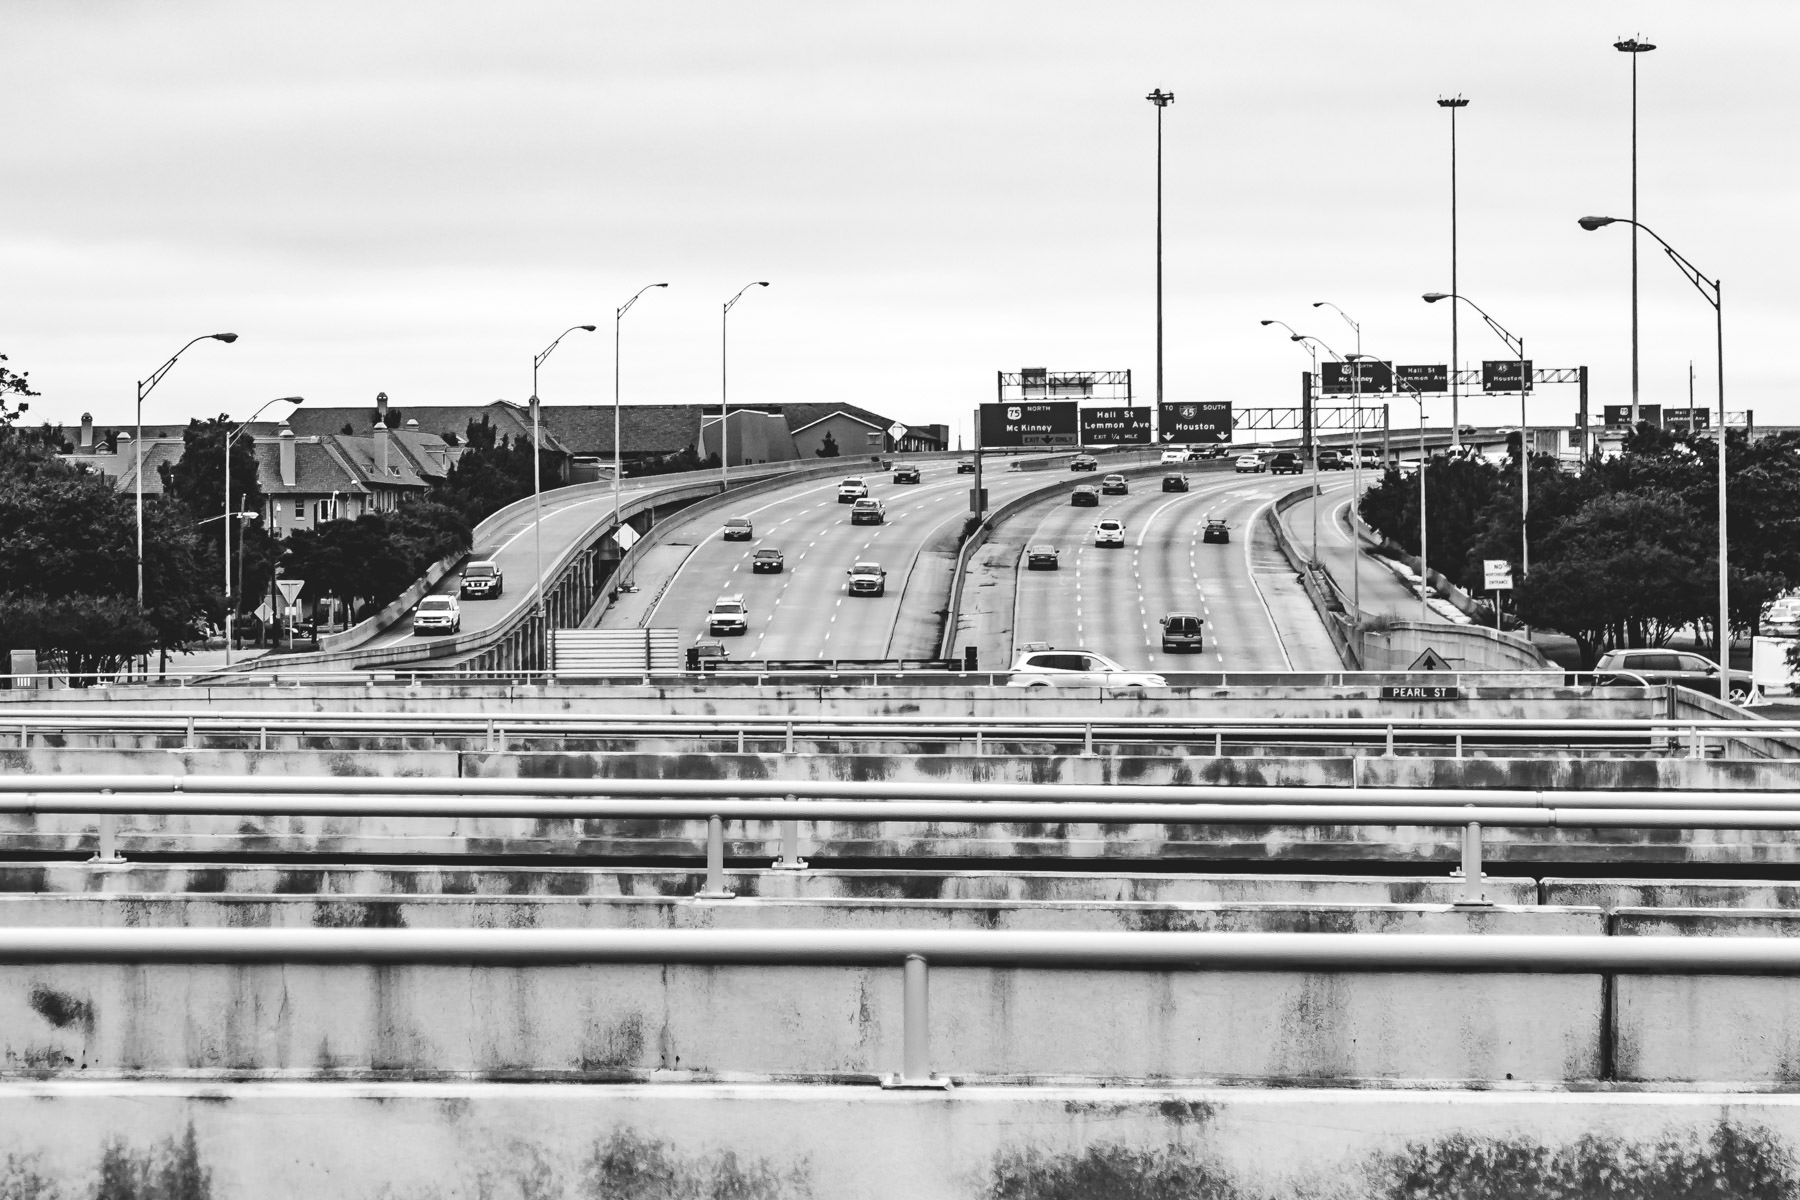 The soon-to-be- covered-over Woodall Rogers Freeway in Uptown Dallas. By 2012, these bridges over the freeway will be replaced by a five acre park while the freeway itself still passes underneath.